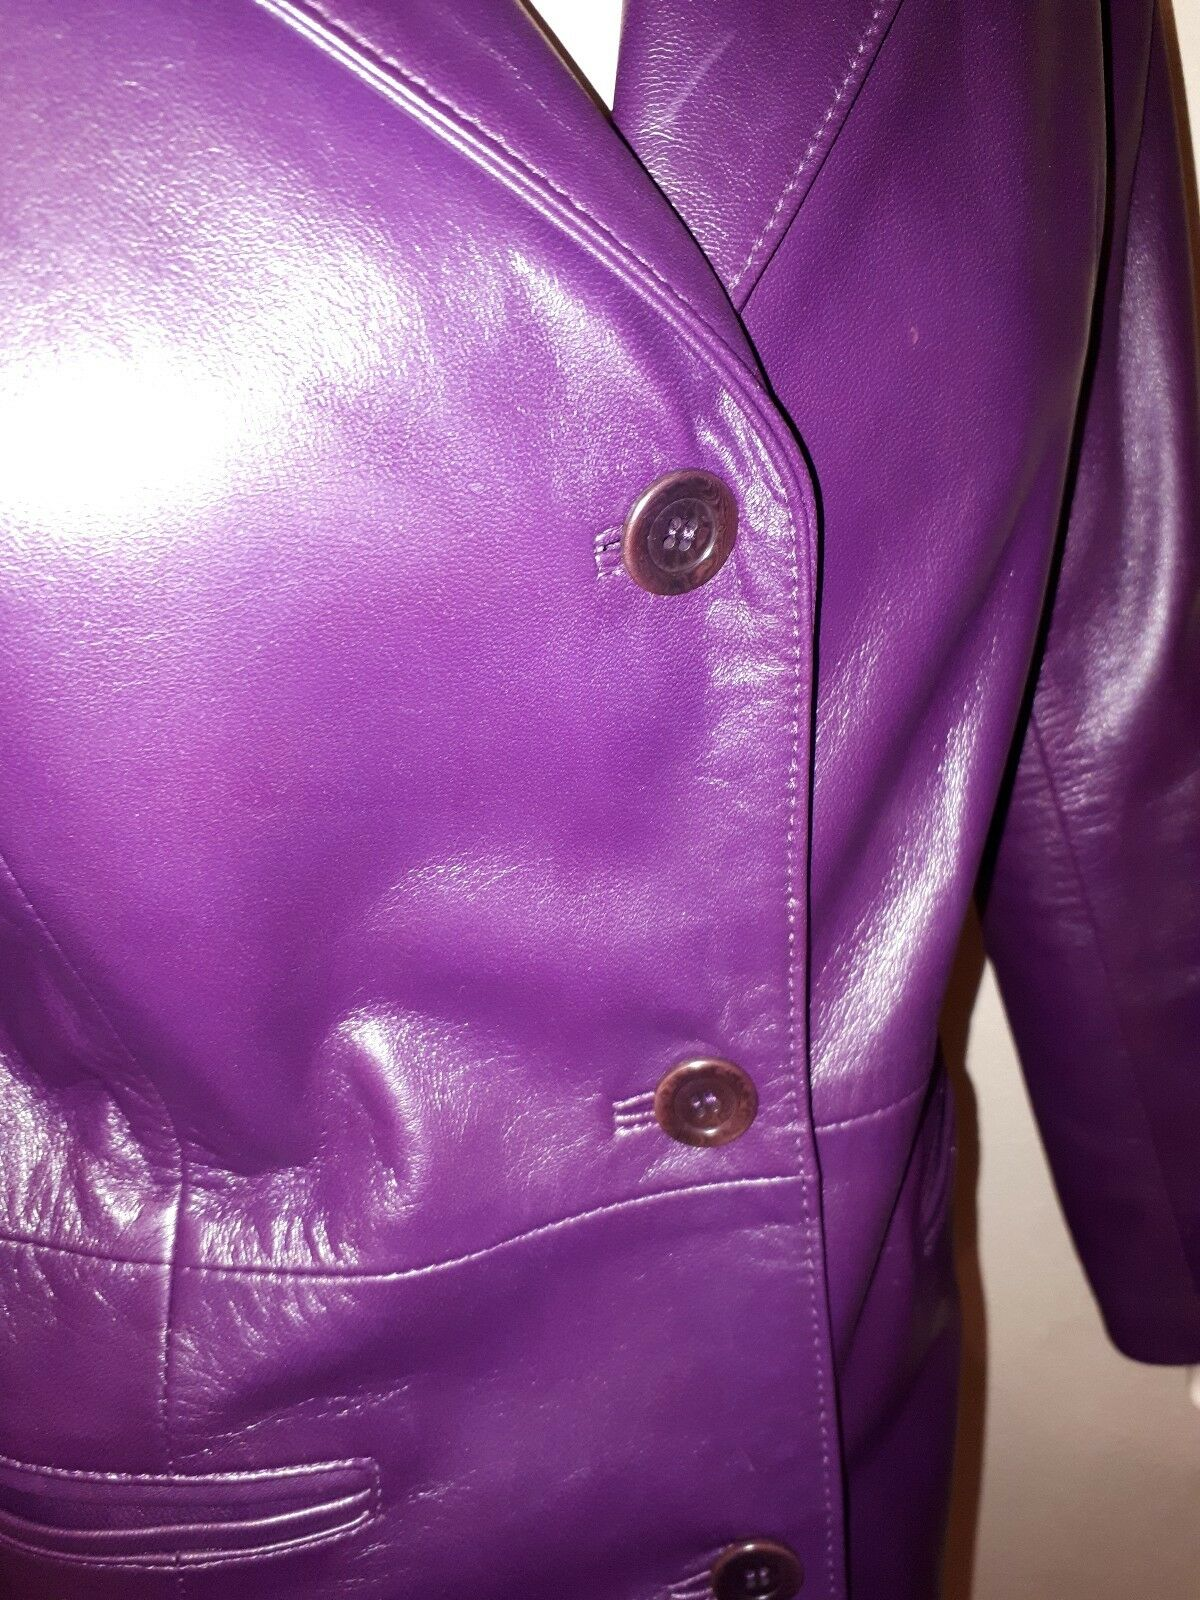 Coat Real Lamb Leather New Purple Classic Style Vintage Vintage Vintage Maxima Calidad Napa cb99a2